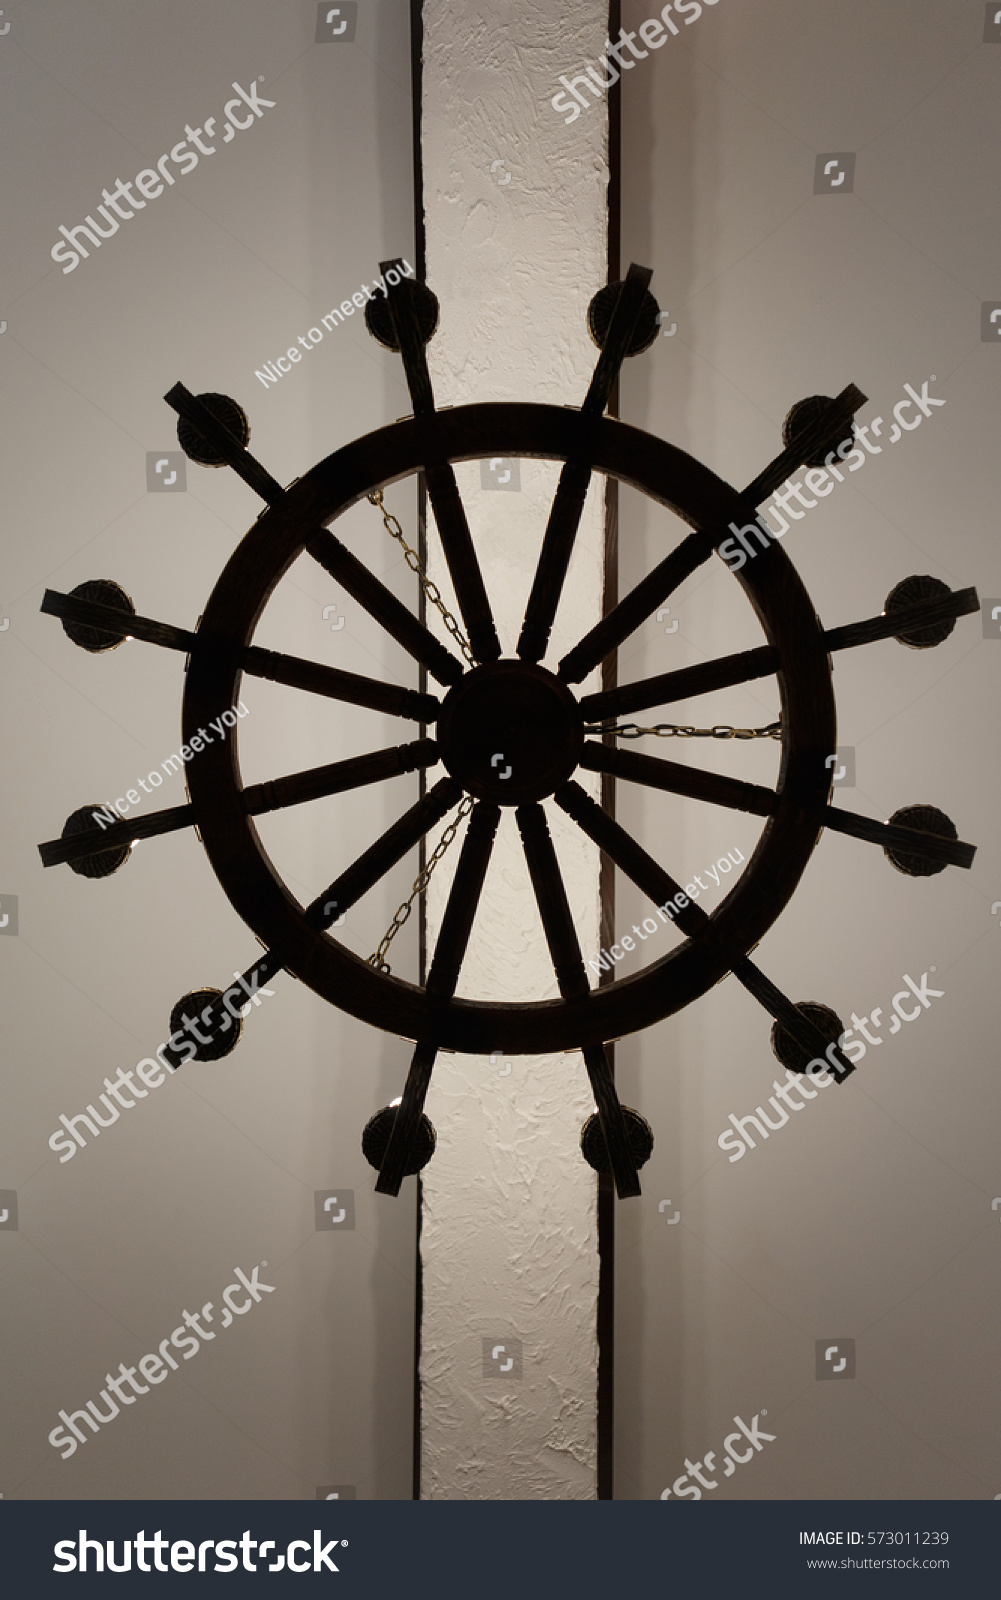 Antique ships wheel chandelier stock photo 573011239 shutterstock antique ships wheel chandelier arubaitofo Image collections